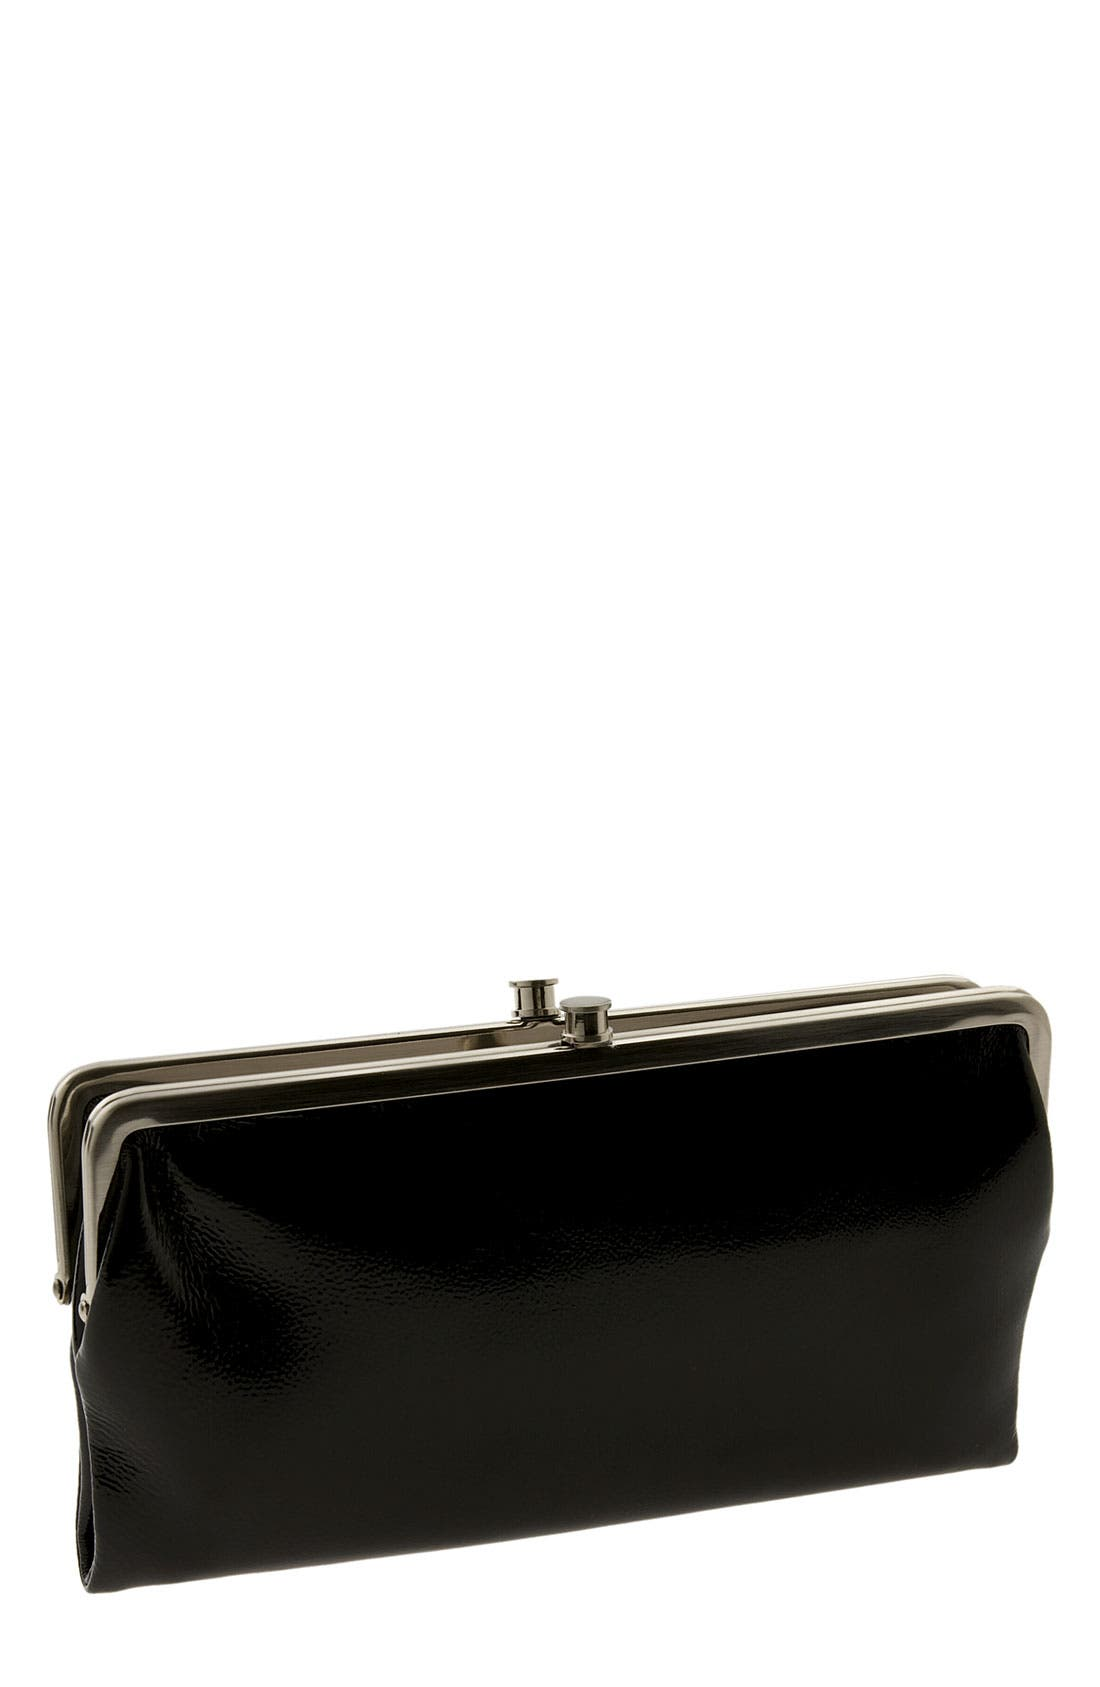 Alternate Image 1 Selected - Hobo 'Belinda' Double Frame Patent Clutch